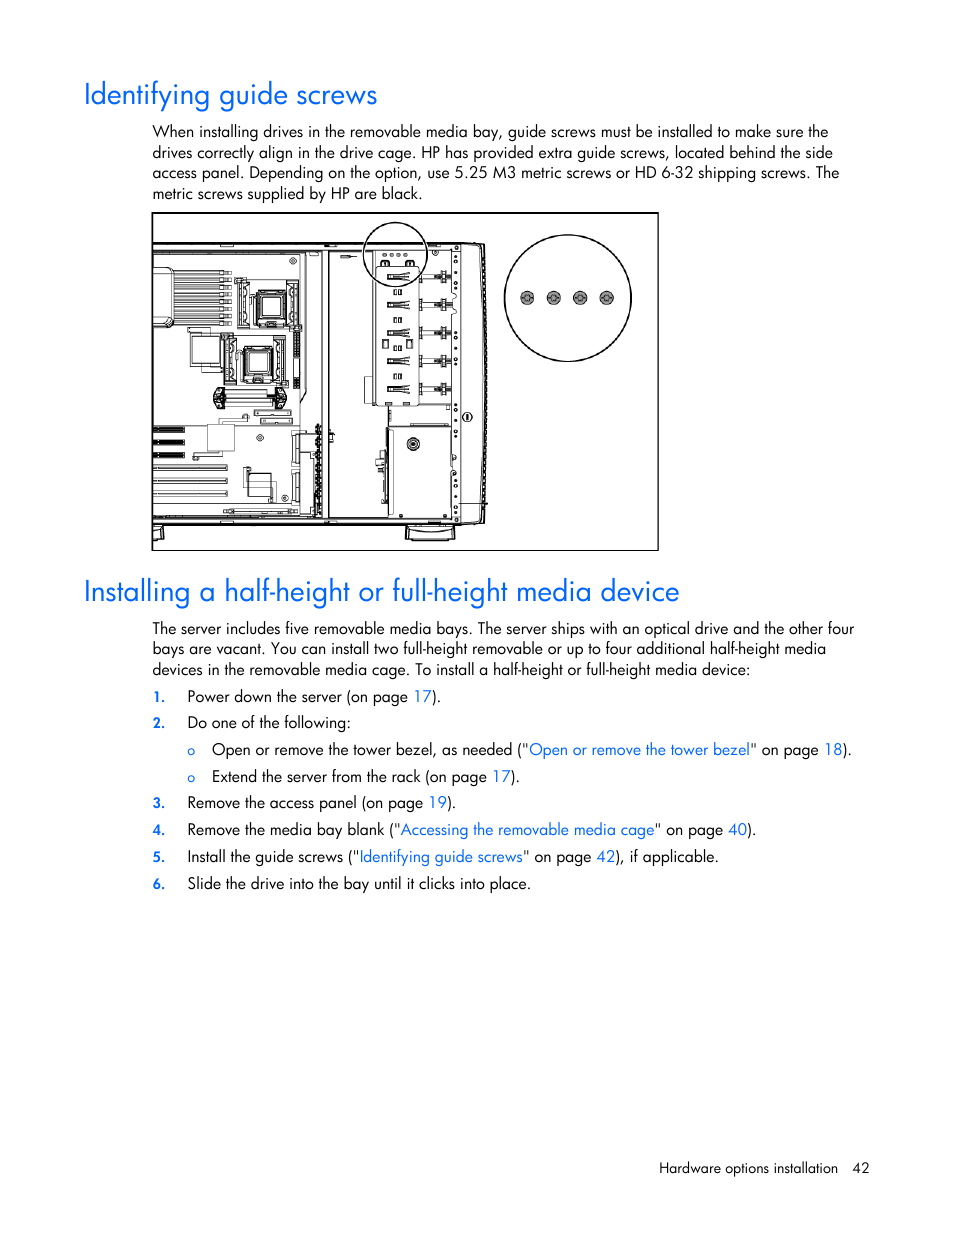 Identifying guide screws | HP ProLiant ML350 G5 Server User Manual | Page  42 / 118